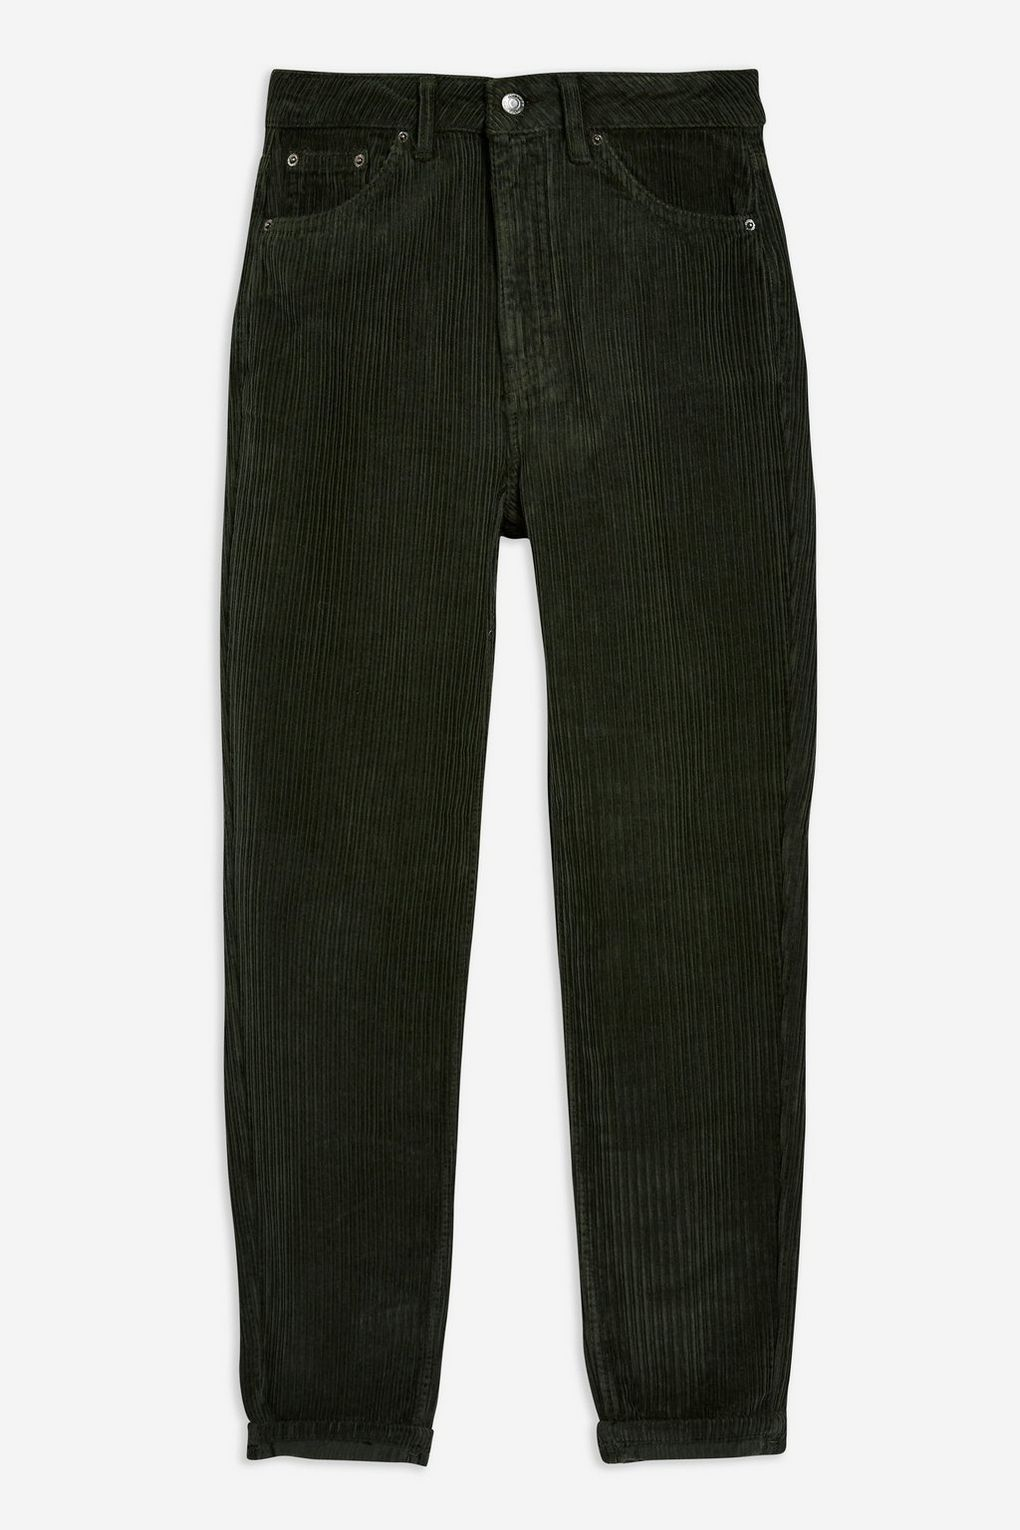 Best jeans for winter